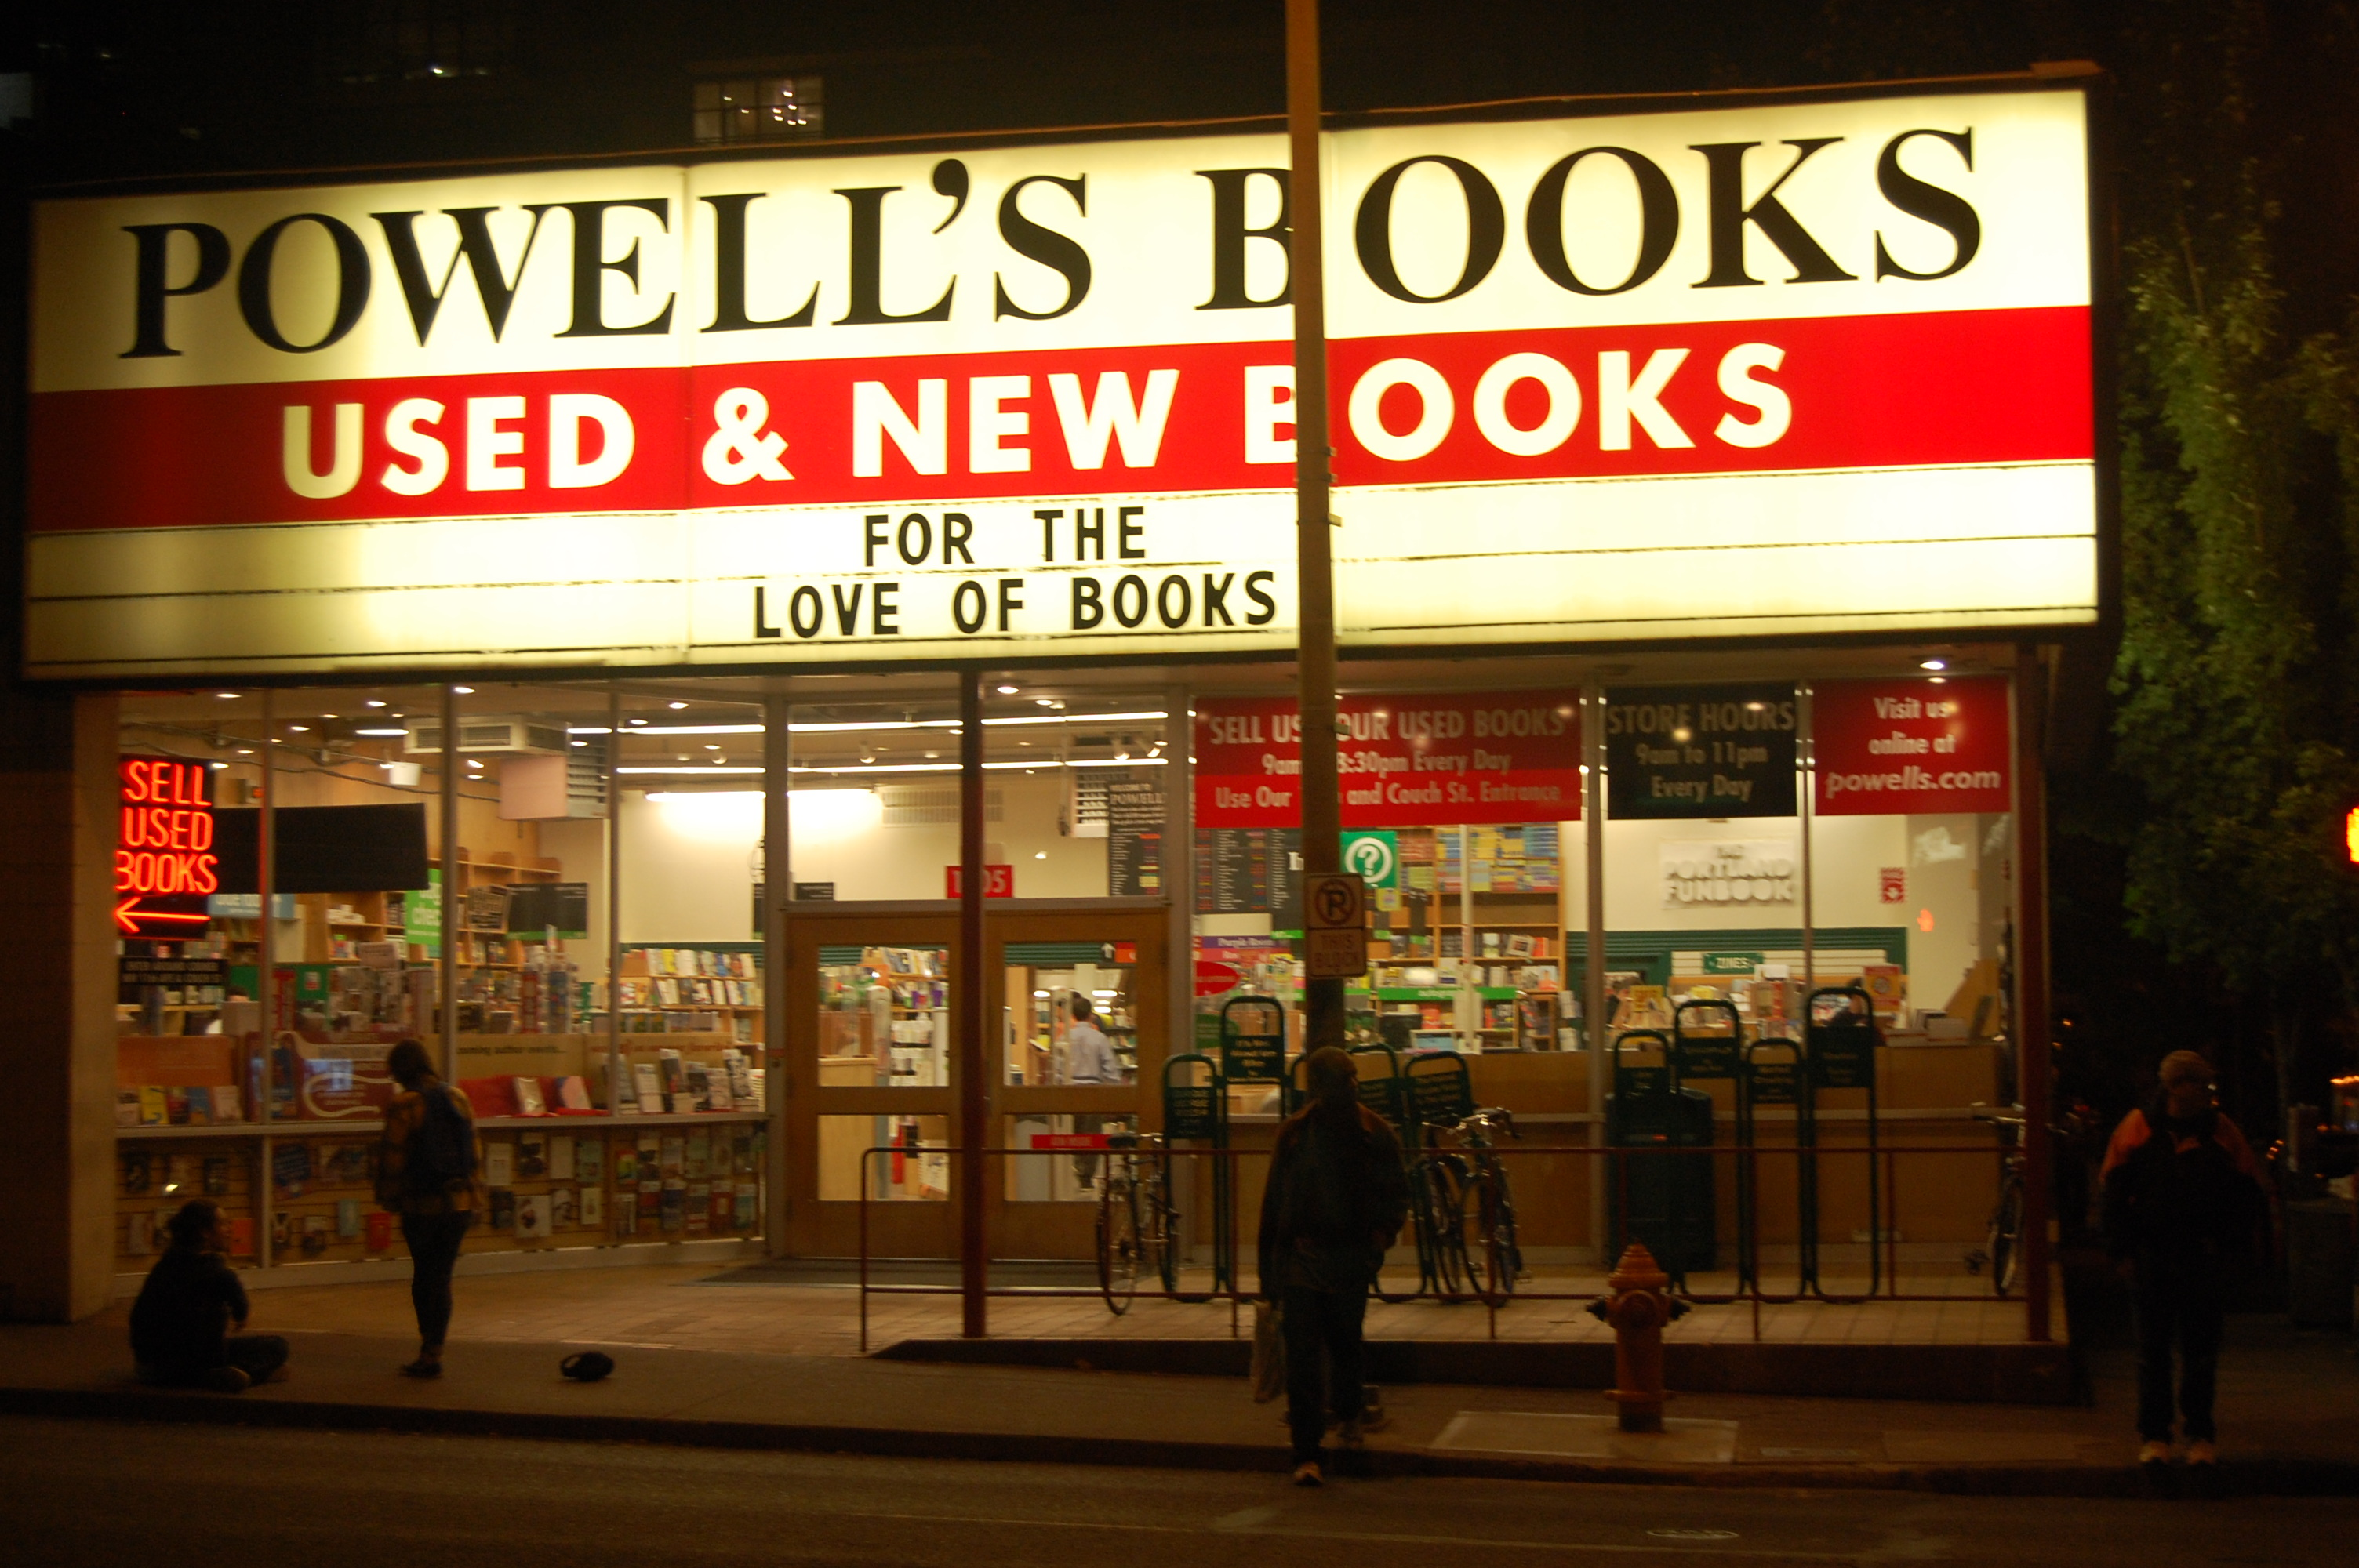 Powell's Books An independent bookseller in Portland, Oregon since , Powell's stocks more than million used, new, rare, and out-of-print titles for sale. % satisfaction is our goal.